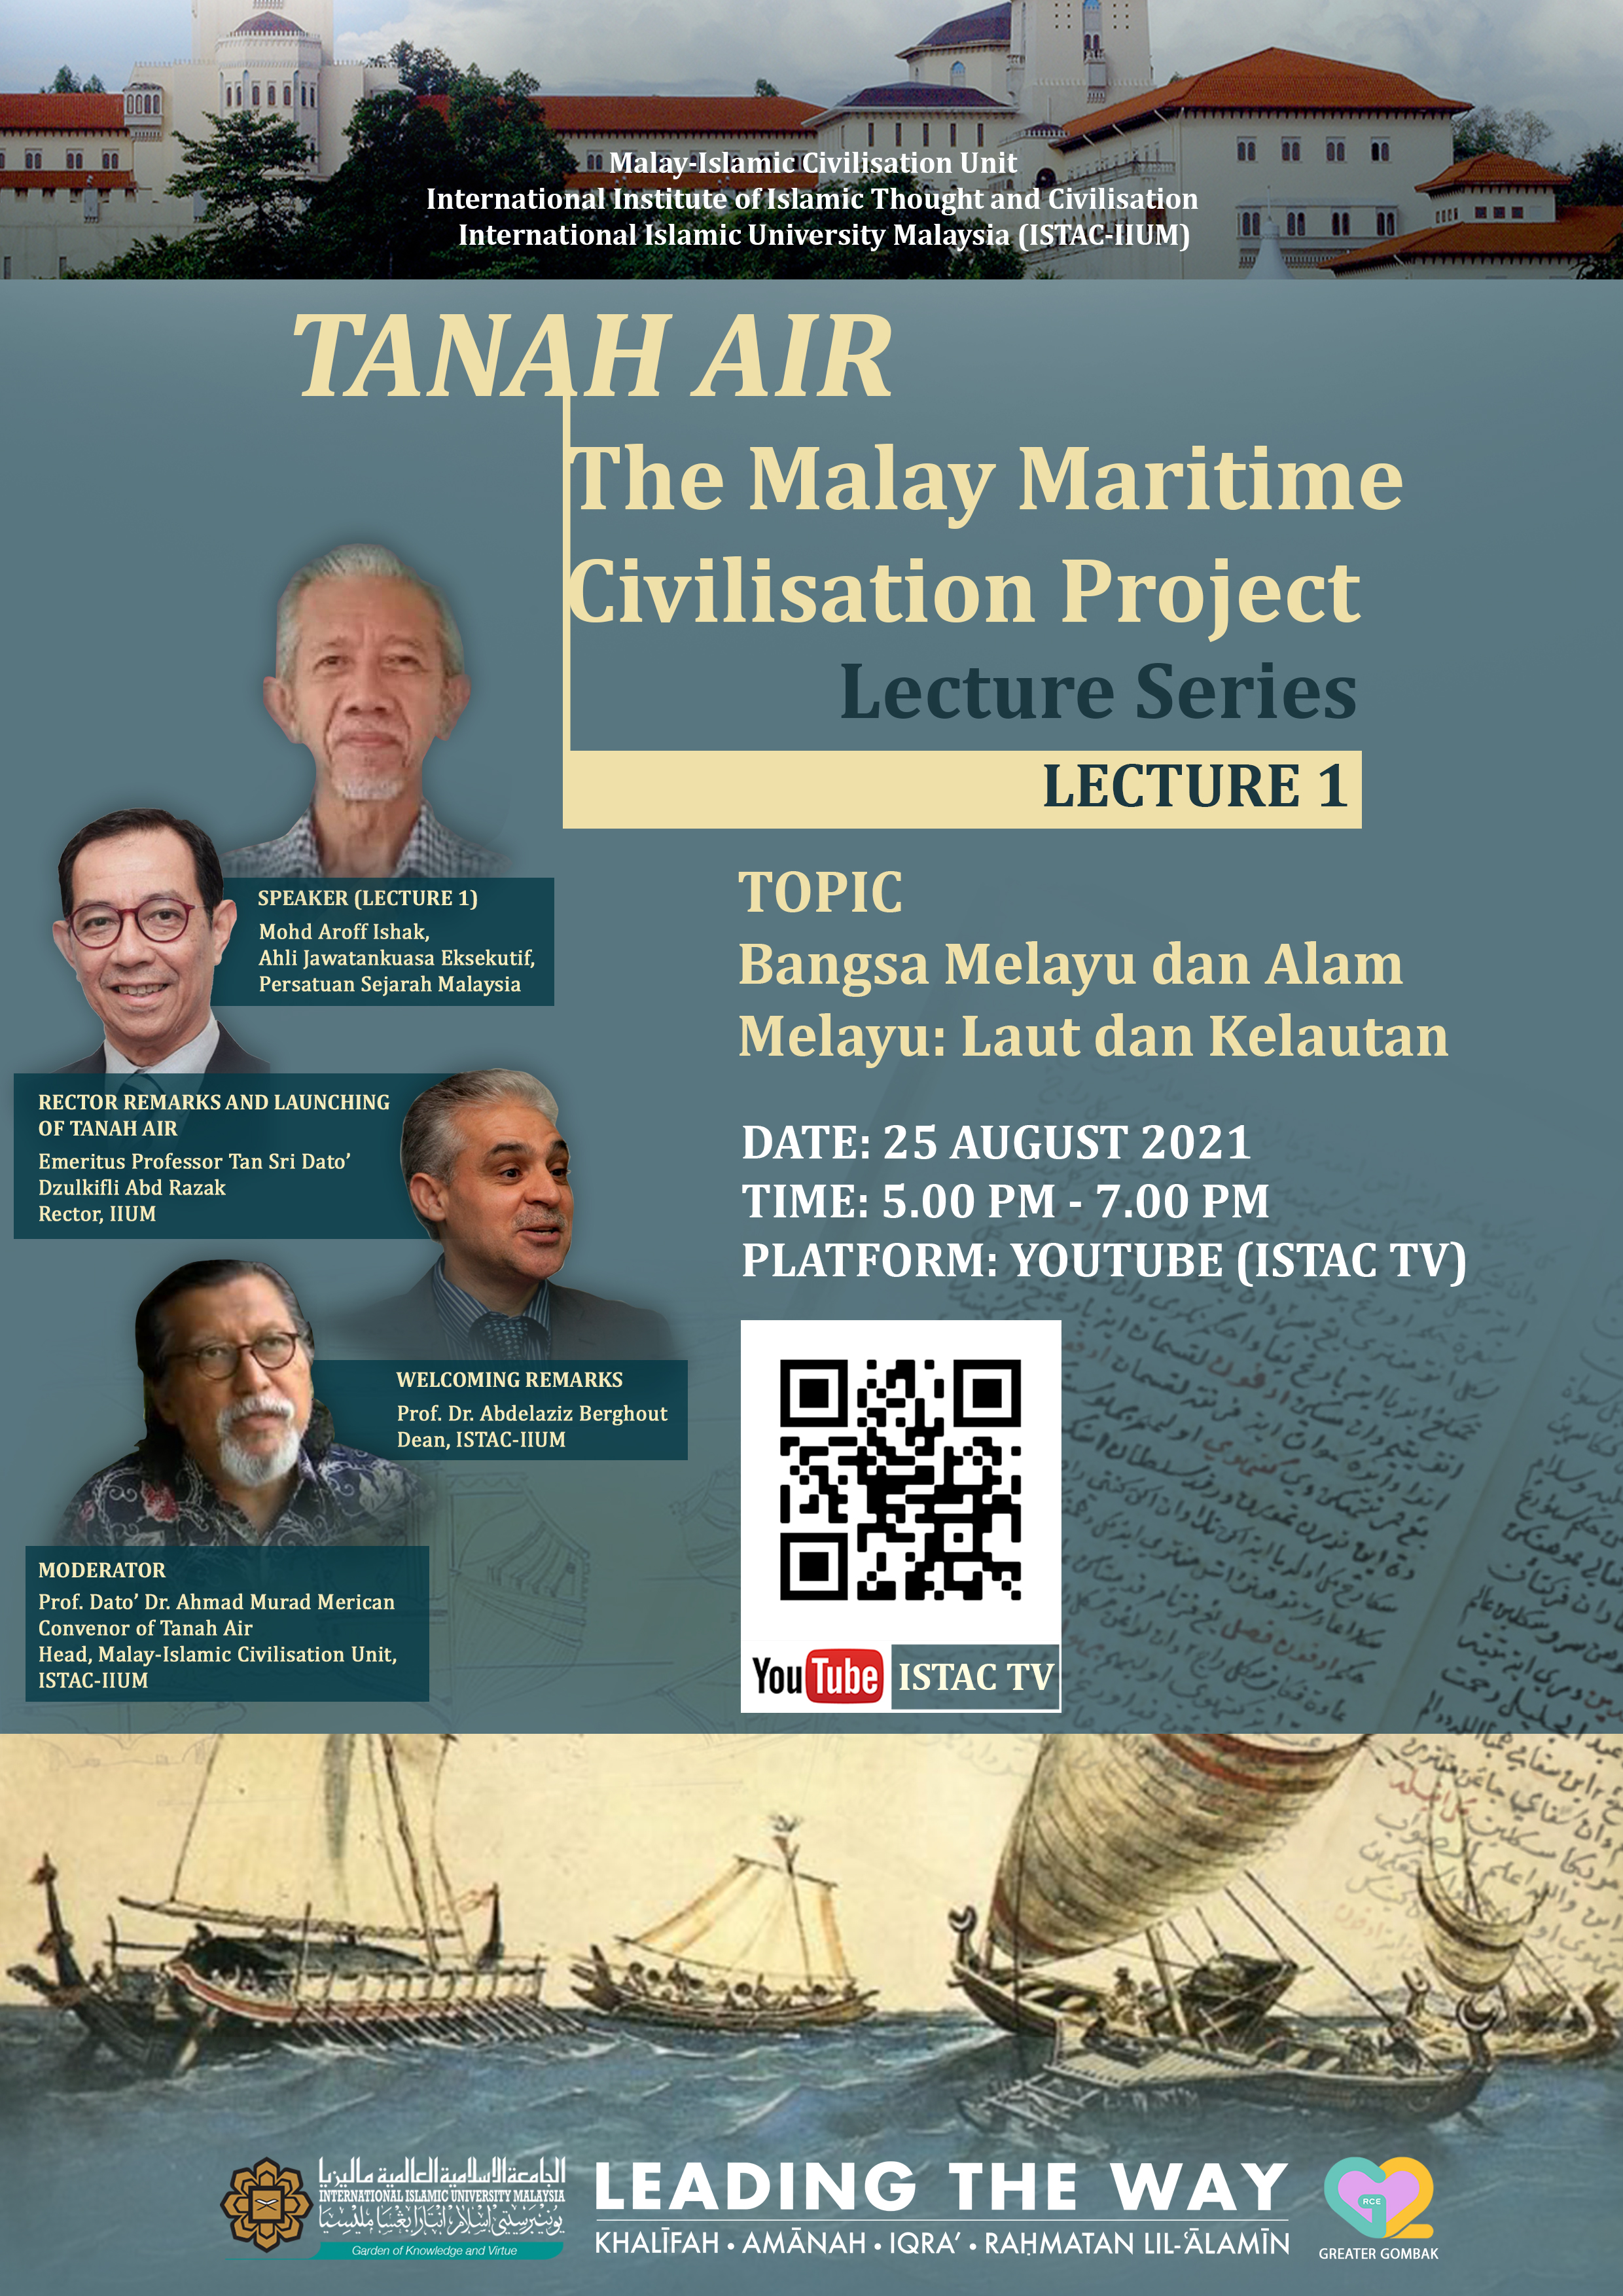 TANAH AIR: THE MALAY MARITIME CIVILISATION PROJECT_FIRST LECTURE